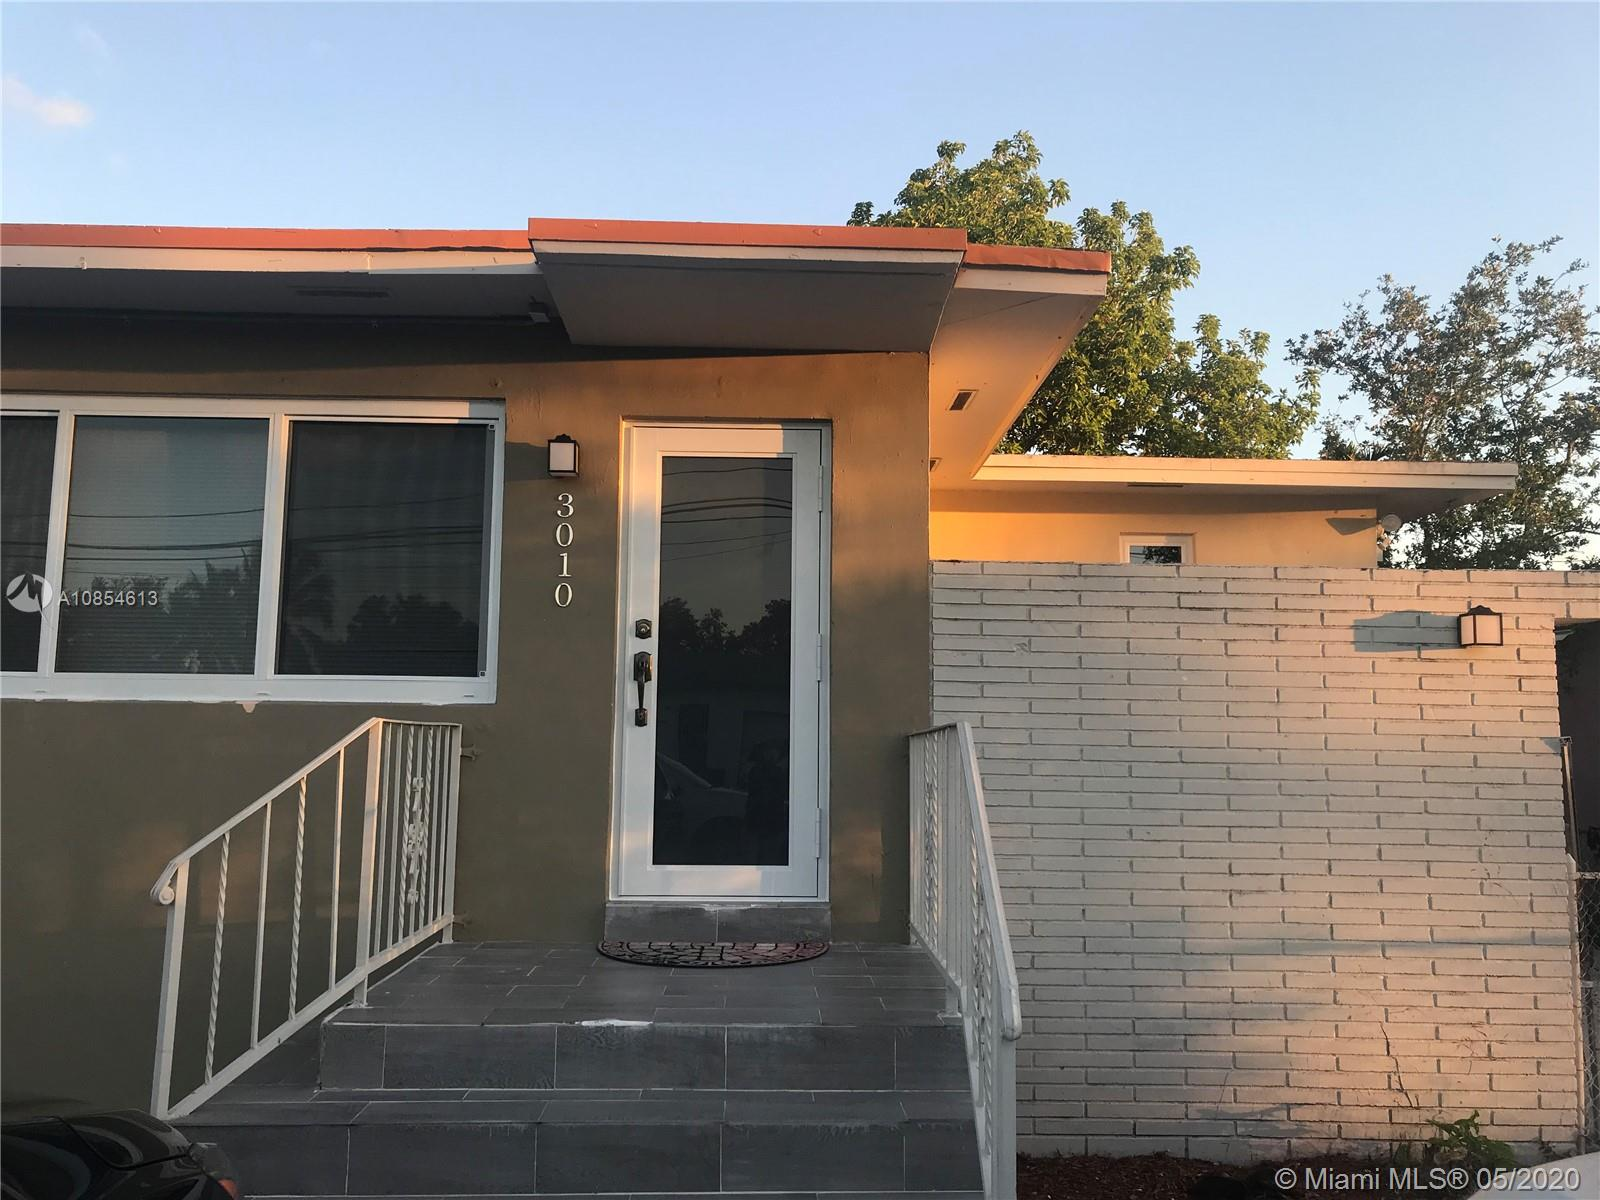 Details for 3010 50th St, Miami, FL 33142